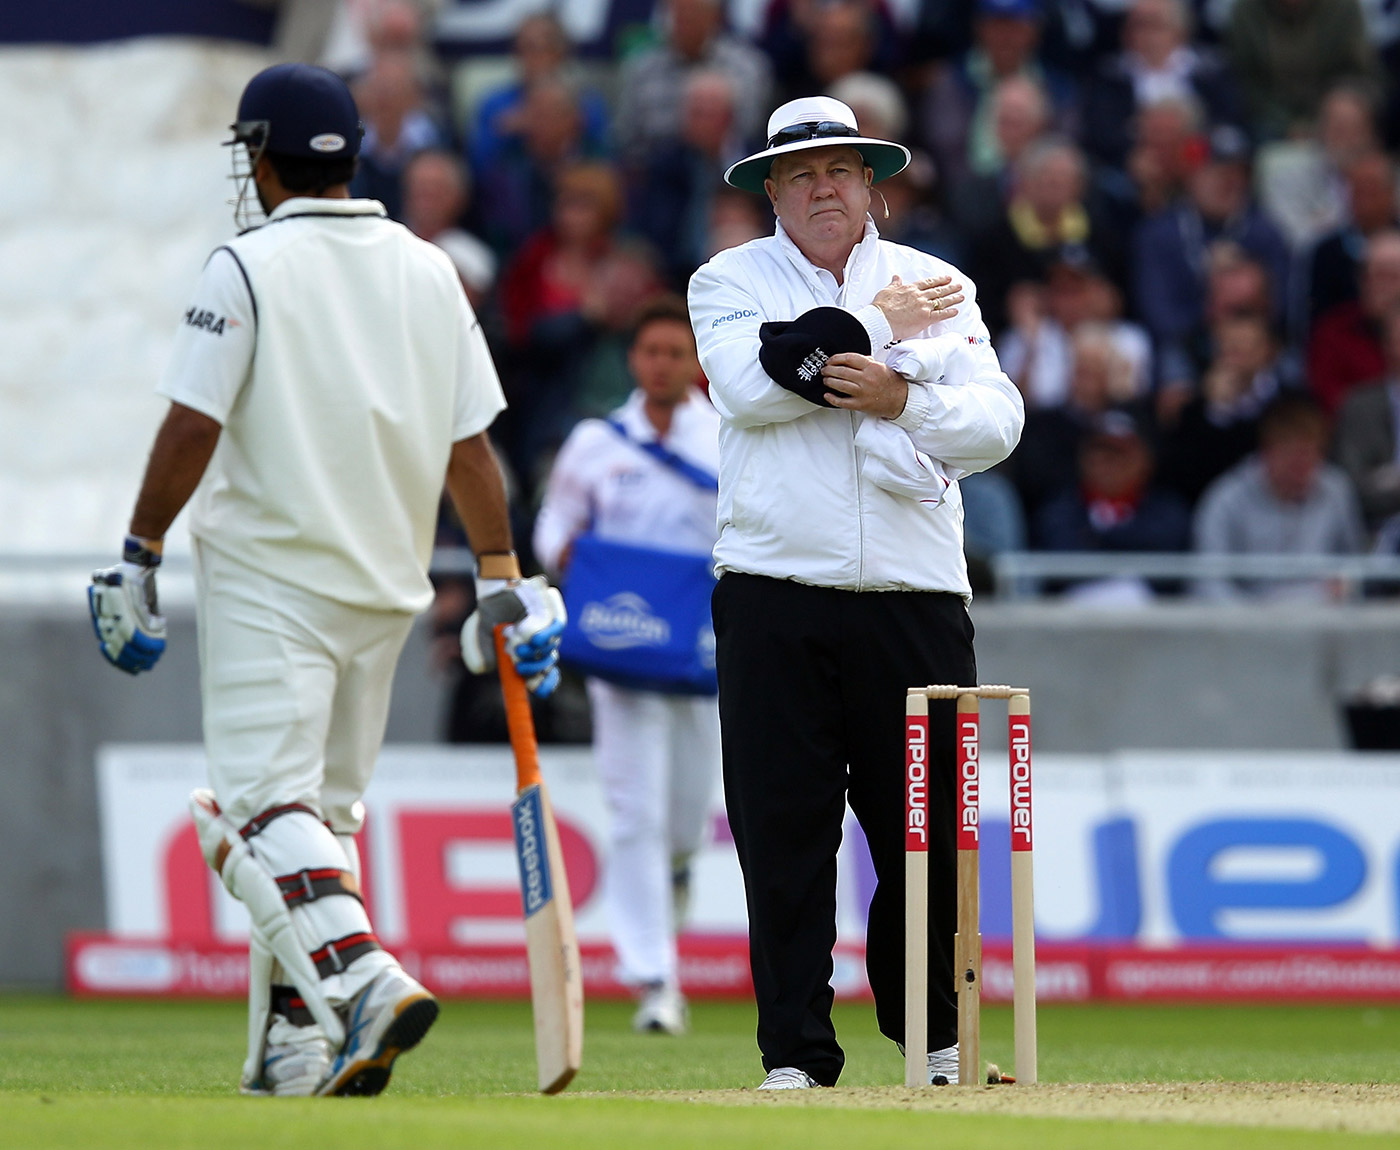 If we eliminate the idea of umpire's call, and with it the idea of the marginal decision itself, is there a need for the umpire?